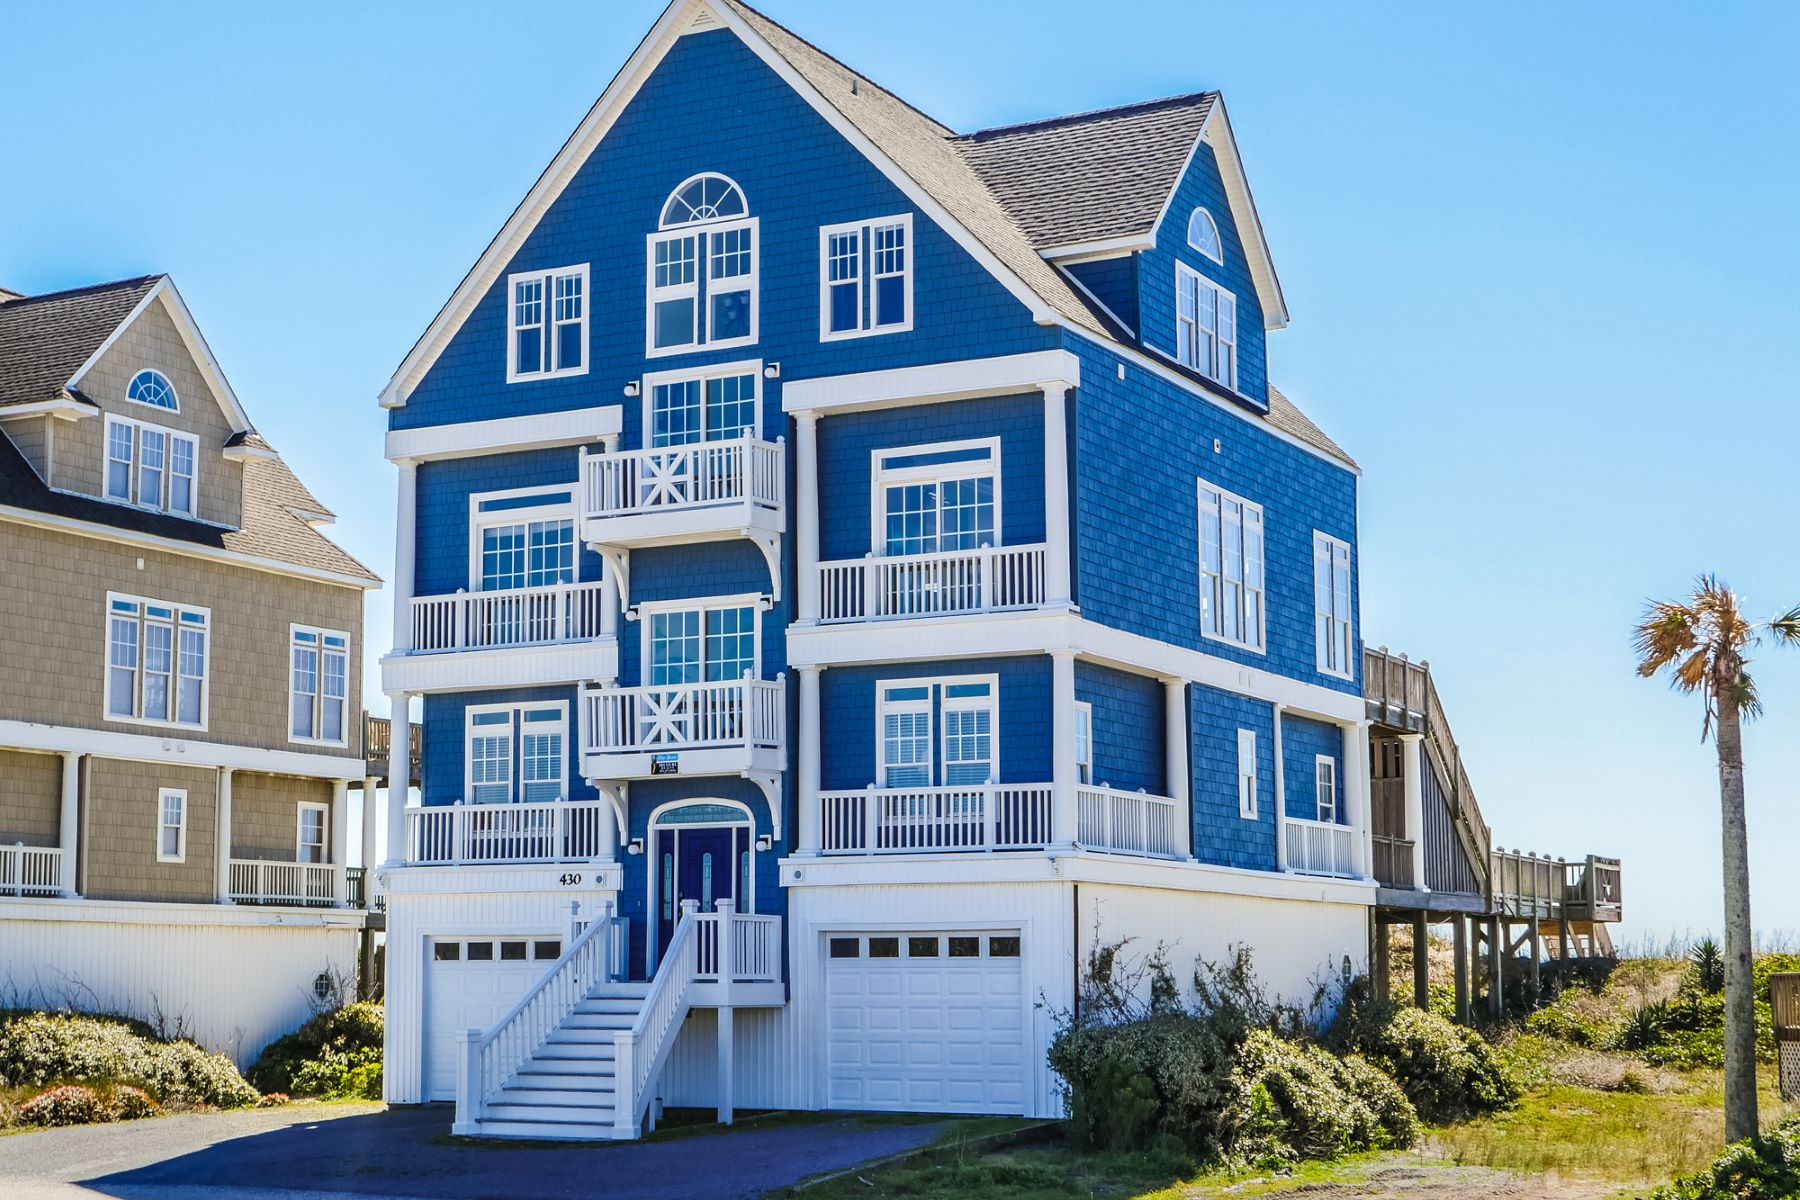 Single Family Home for Sale at Oceanfront Living on the White Sands of Topsail 430 New River Inlet Rd N Topsail Beach, North Carolina 28460 United States